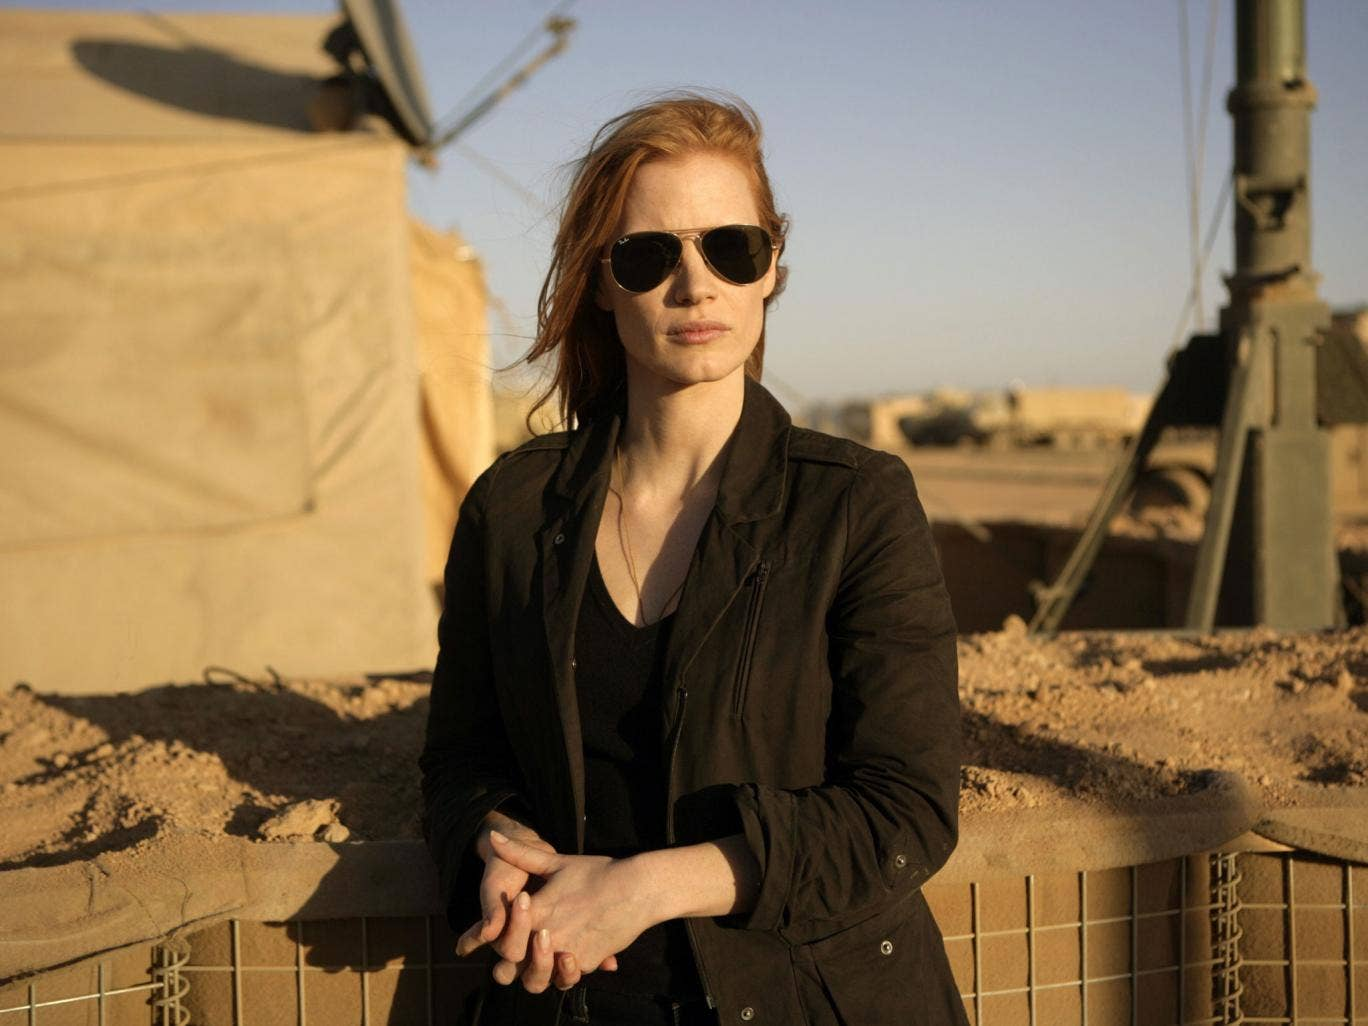 On the hunt: Jessica Chastain stars as CIA agent Maya in action thriller, Zero Dark Thirty